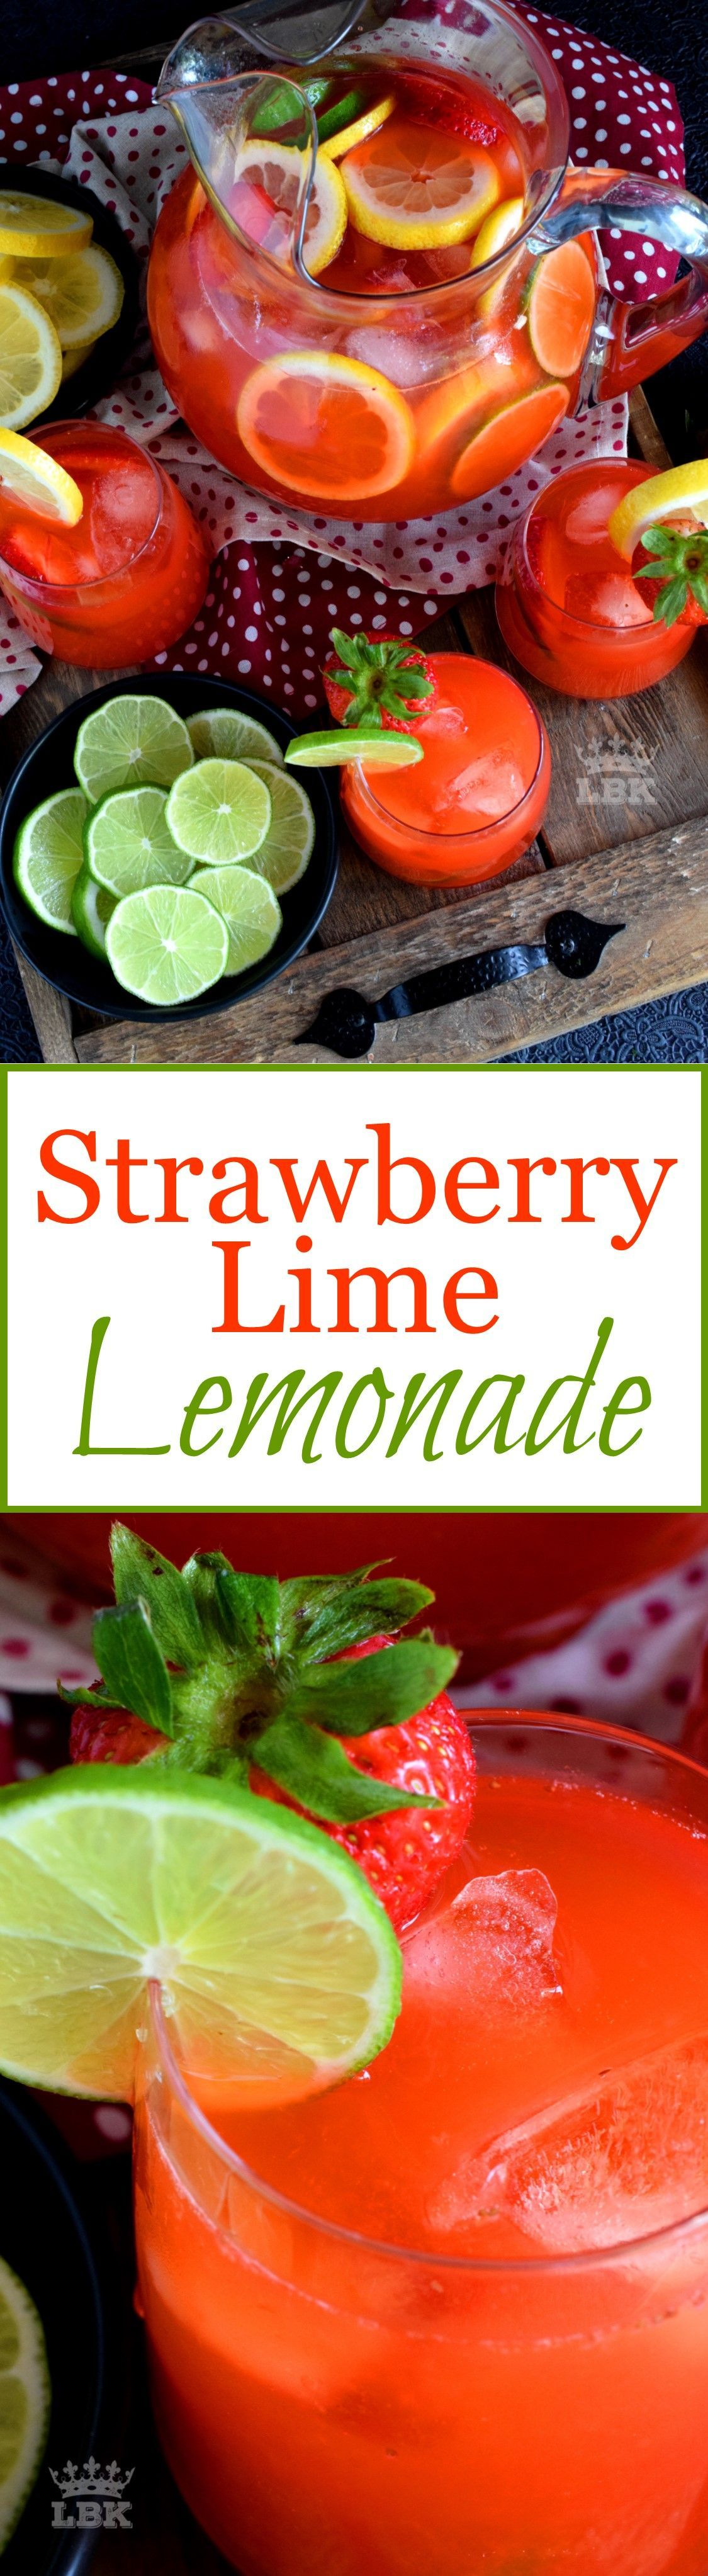 Strawberry Lime Lemonade - A refreshing summer drink made with simple syrup, whole strawberries, lime and lemon juice. Plain lemonade cannot beat this! Strawberry Lime Lemonade - A refreshing summer drink made with simple syrup, whole strawberries, lime and lemon juice. Plain lemonade cannot beat this!